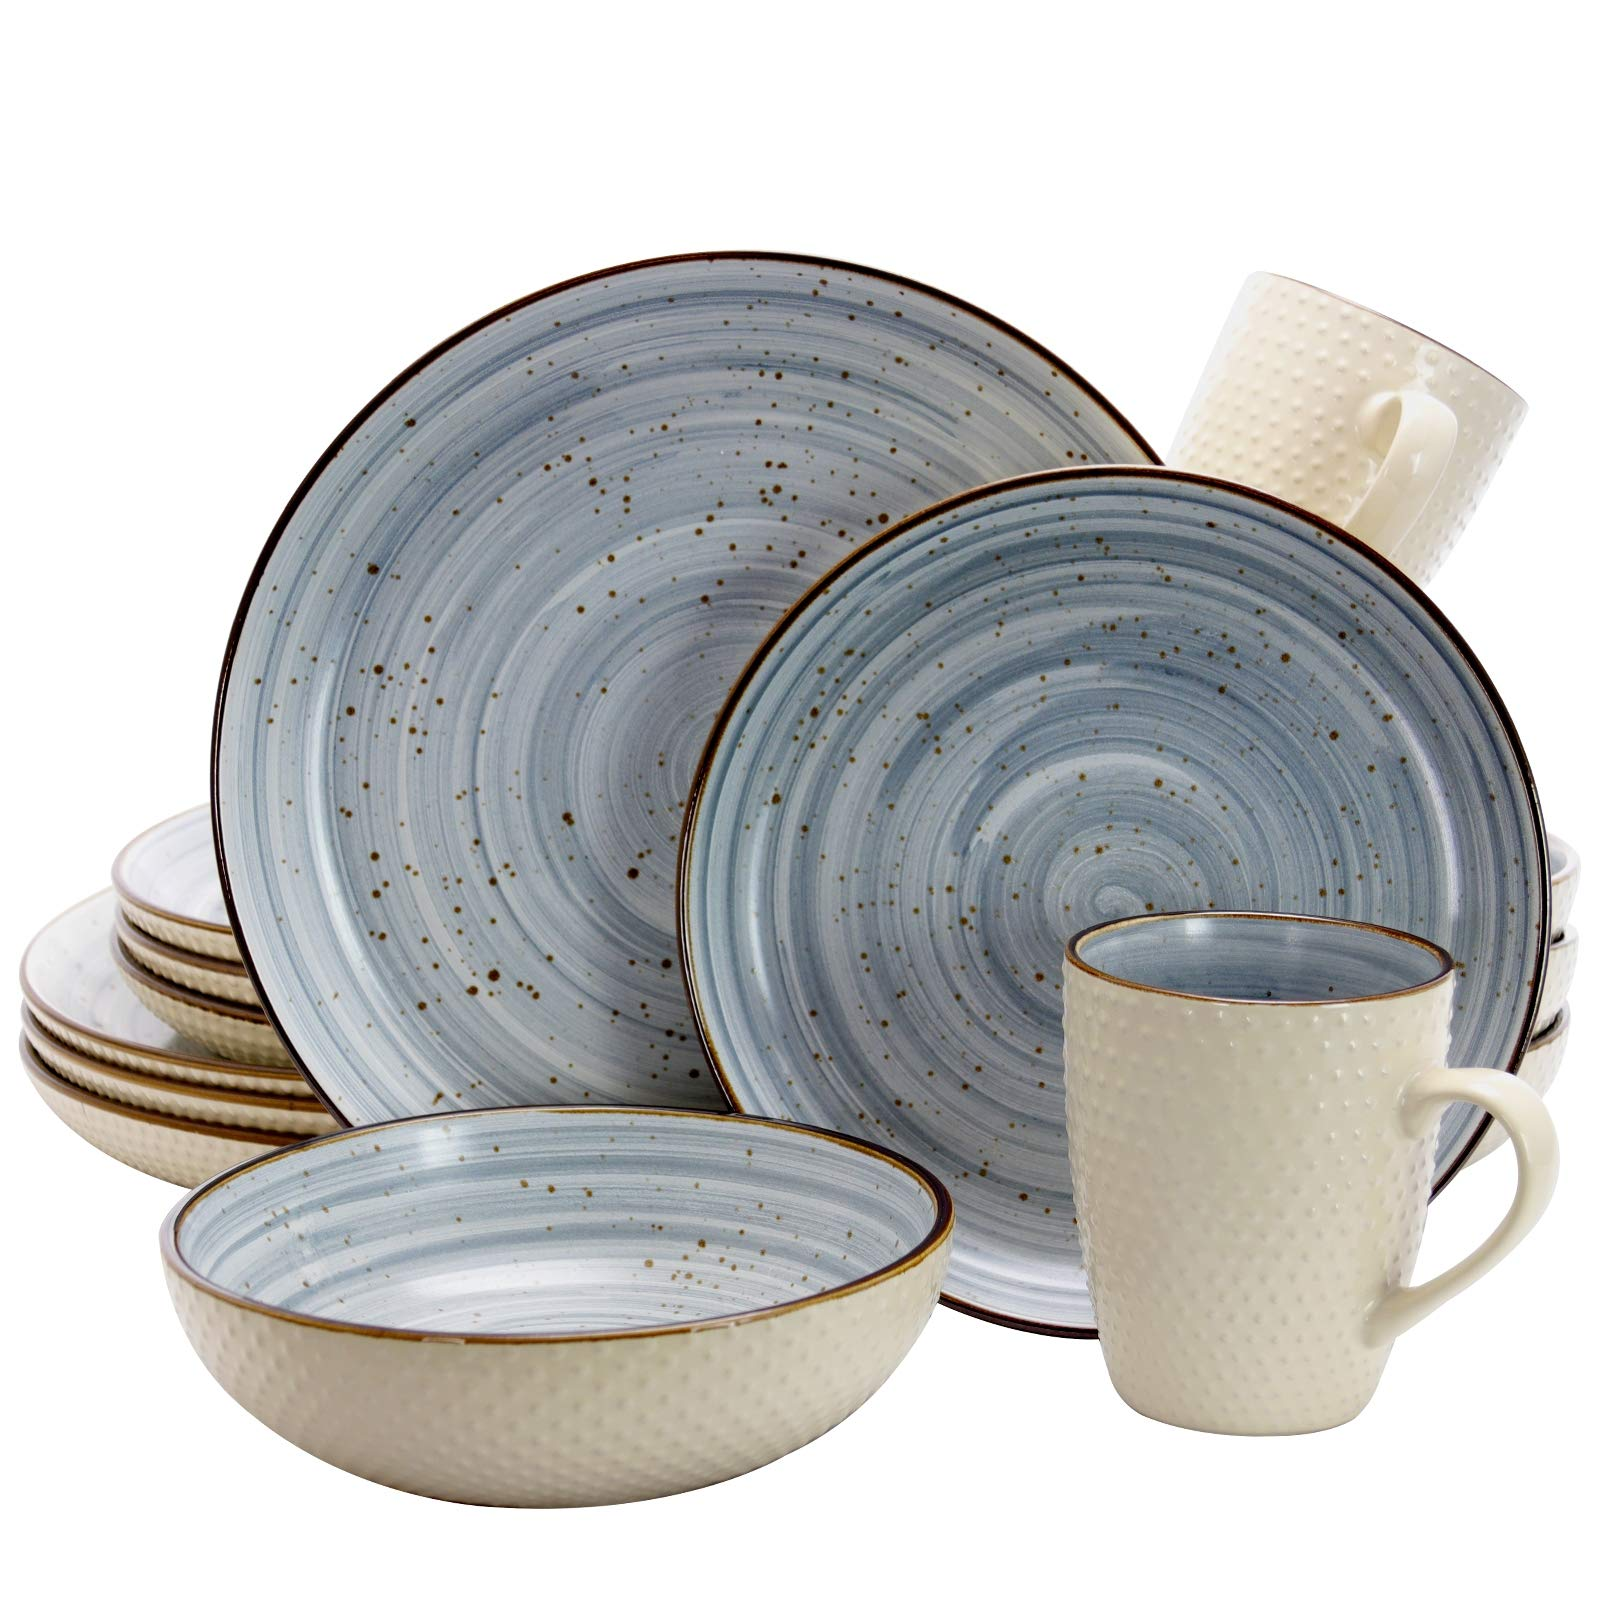 Elama EL-MELLOWBLUE Mellow 16-Piece Dinnerware Set in Powder Blue, 16pc by Elama